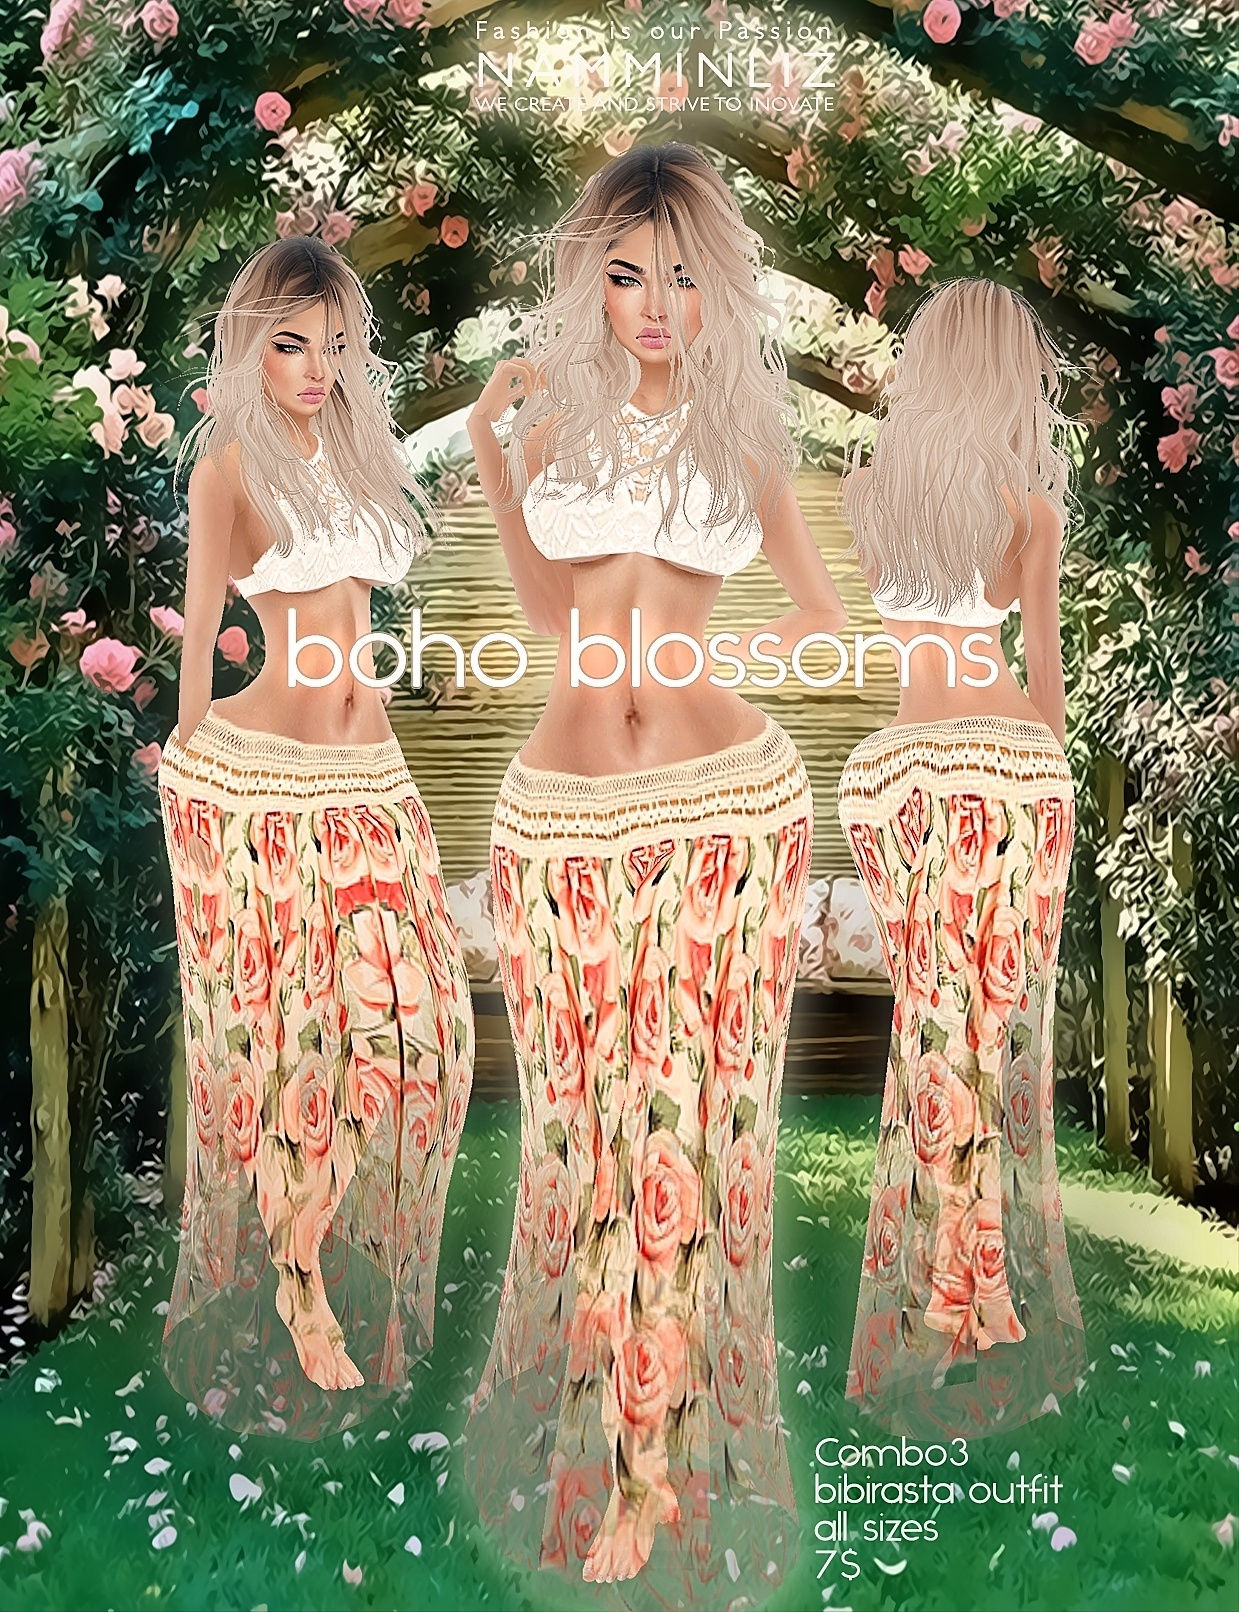 Boho blossoms combo4 all sizes bibirasta imvu texture PNG